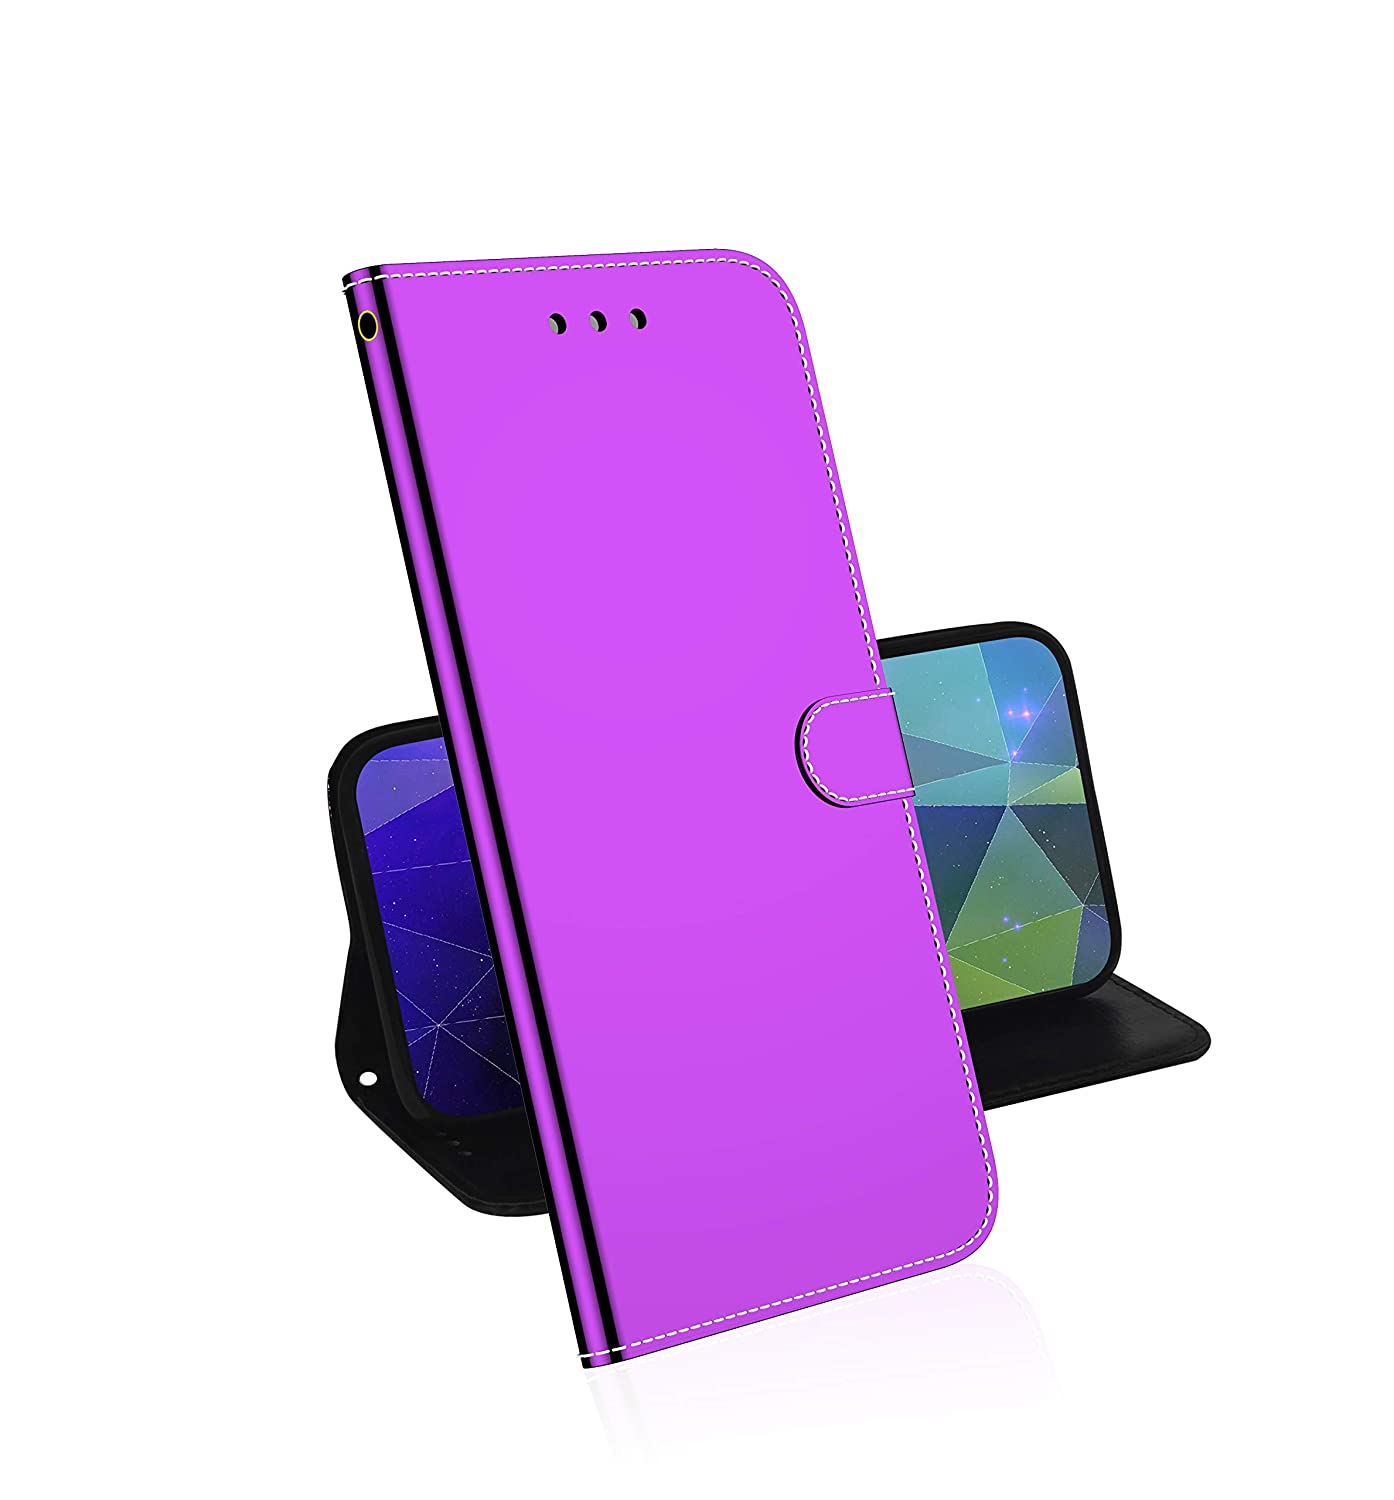 Soporte Plegable Funci/ón Funda Cierre Magn/ético Plata Absorci/ón de Choque TOUCASA Funda iPhone 11 Pro MAX 6,5 Pulgadas PU Cuero Slim Case de Estilo Billetera Carcasa Interna Suave